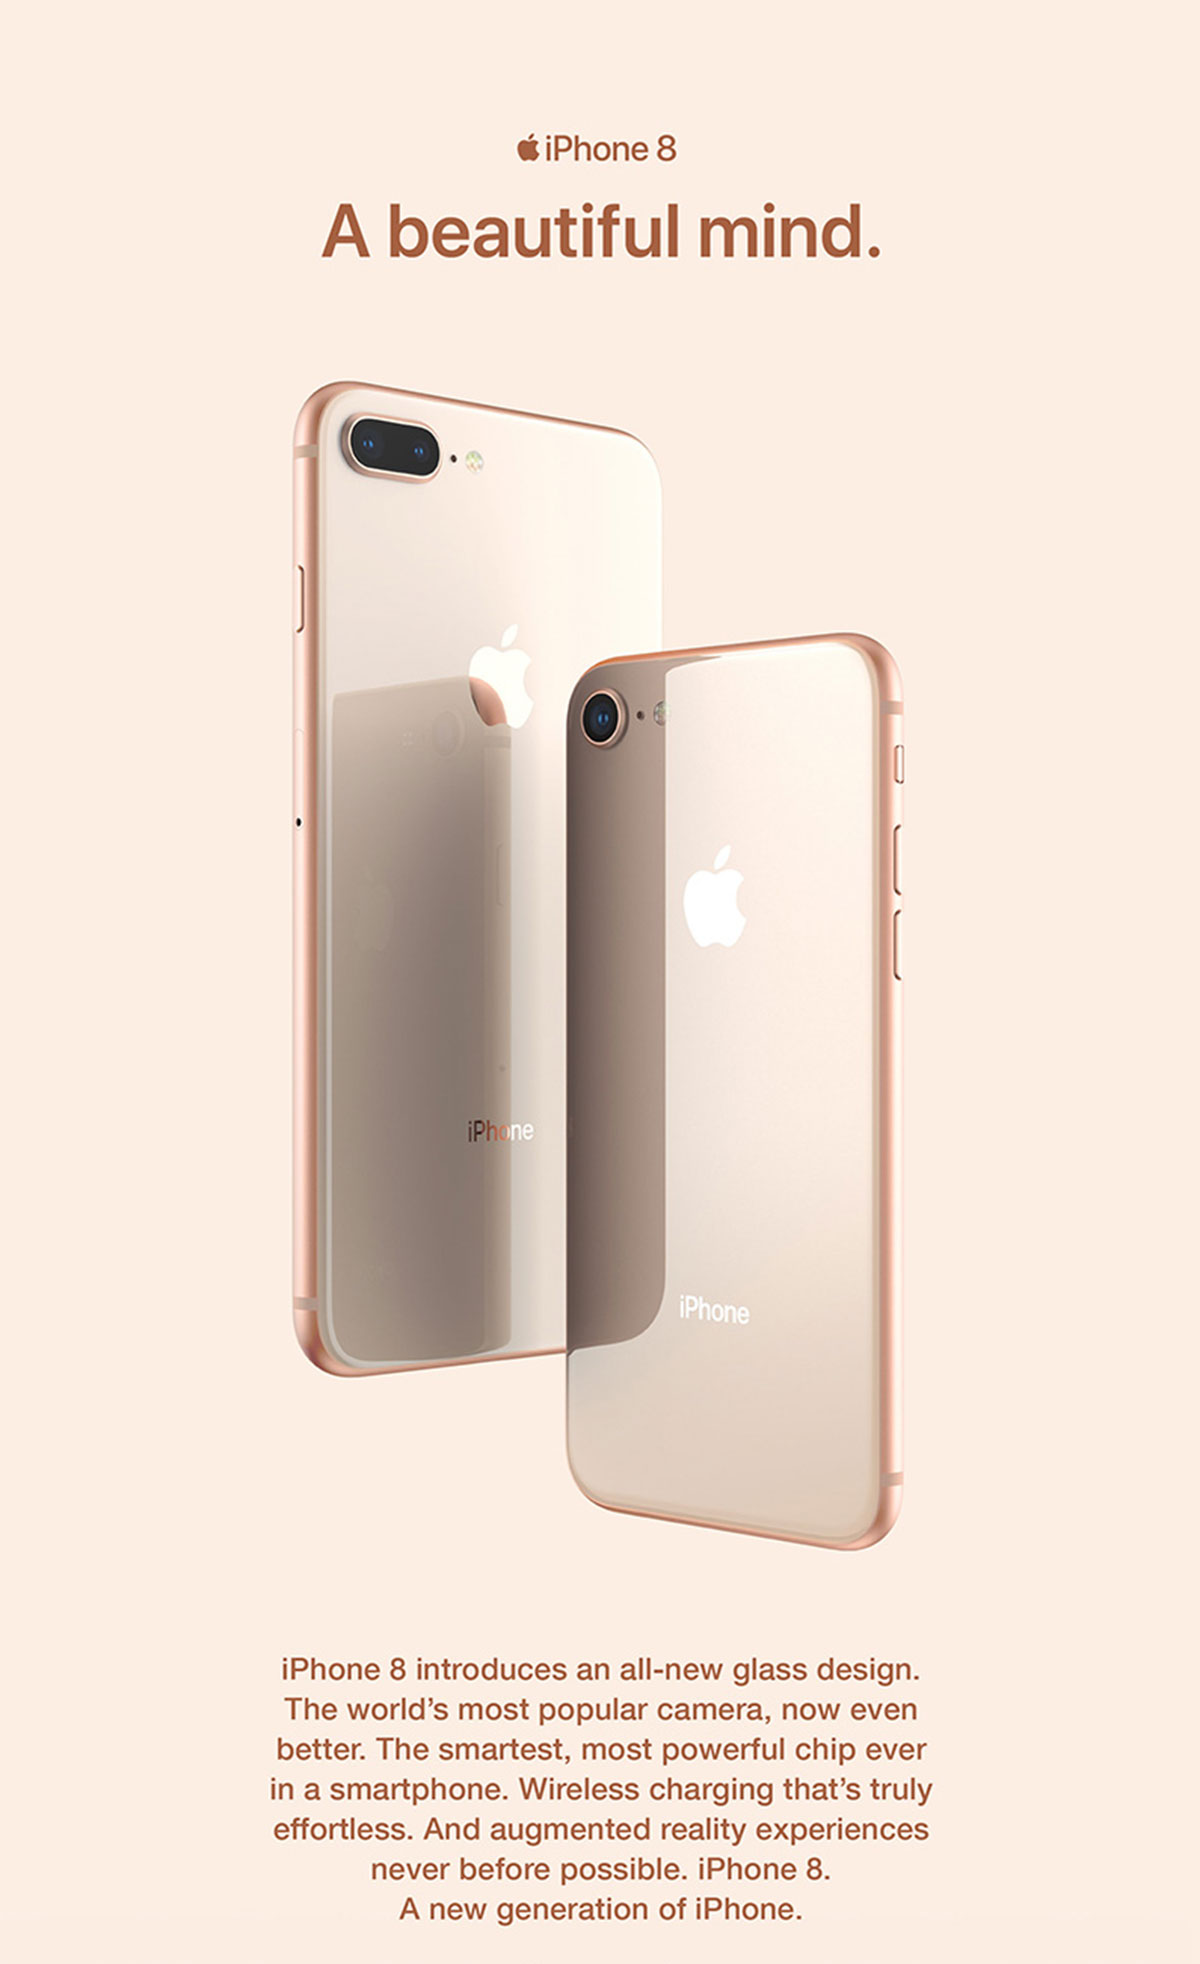 iPhone 8 and 8 plus